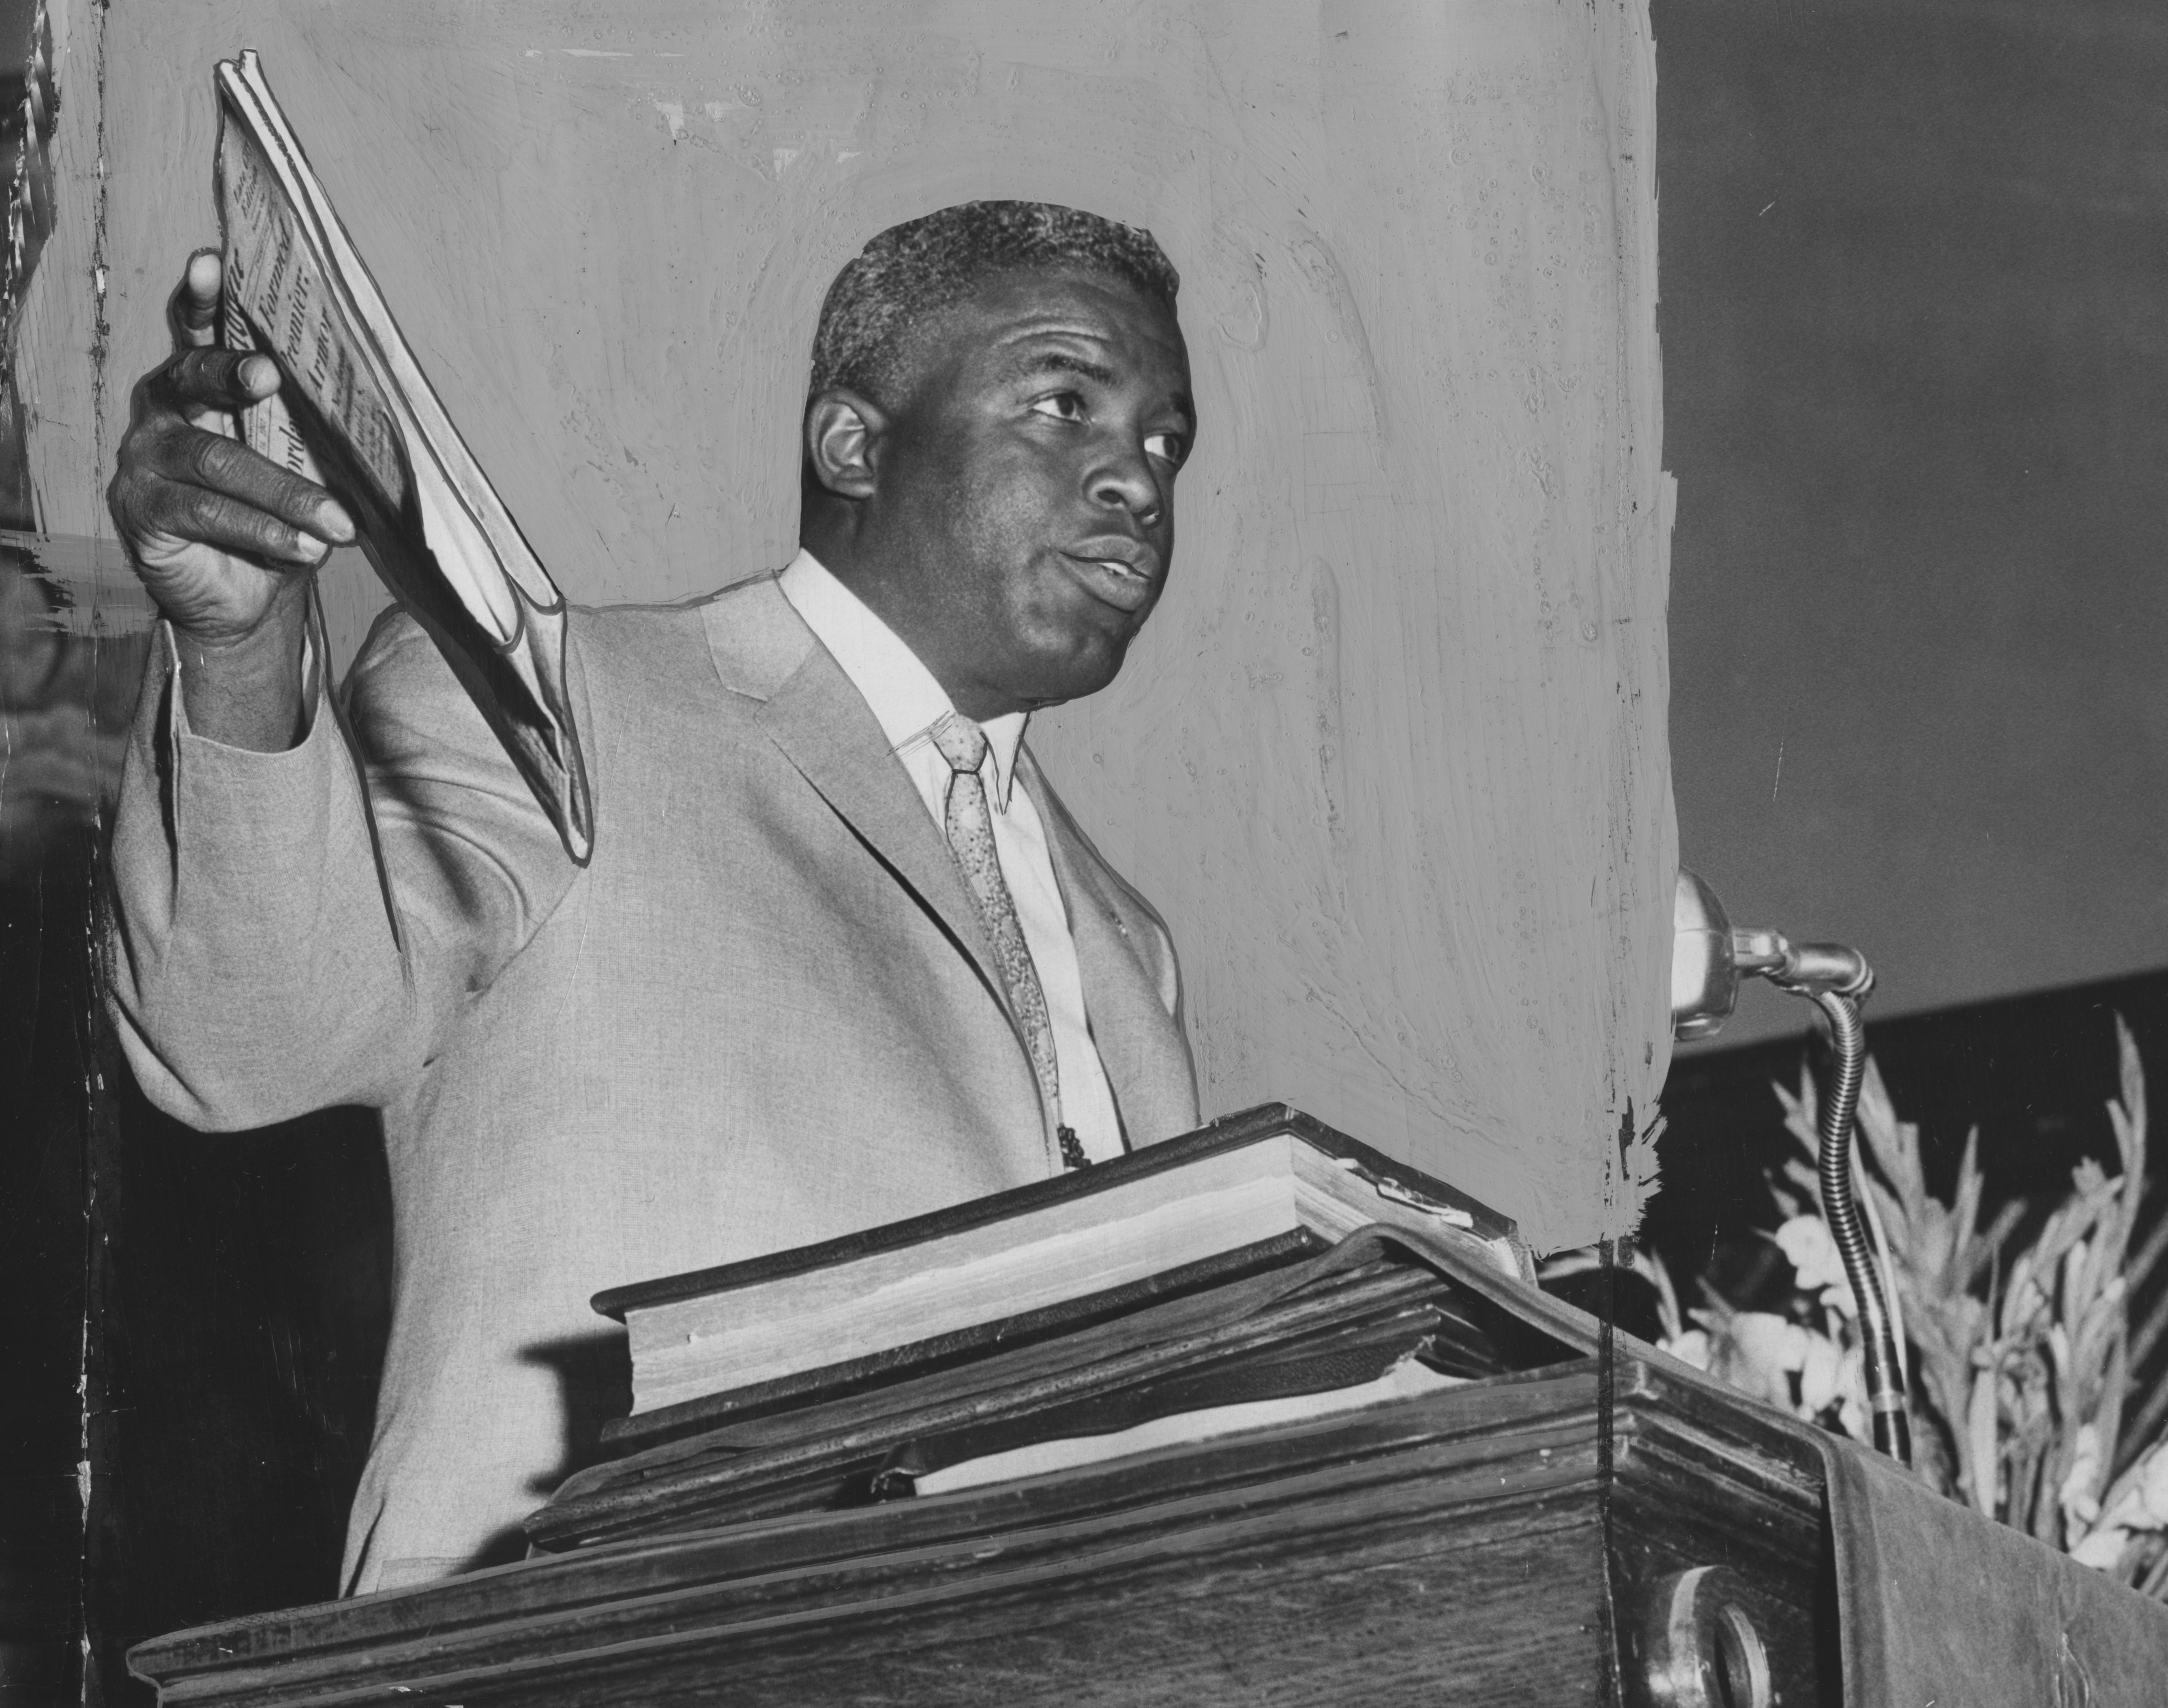 A man in full: Robinson as activist and moral force in 1970, two years before his death